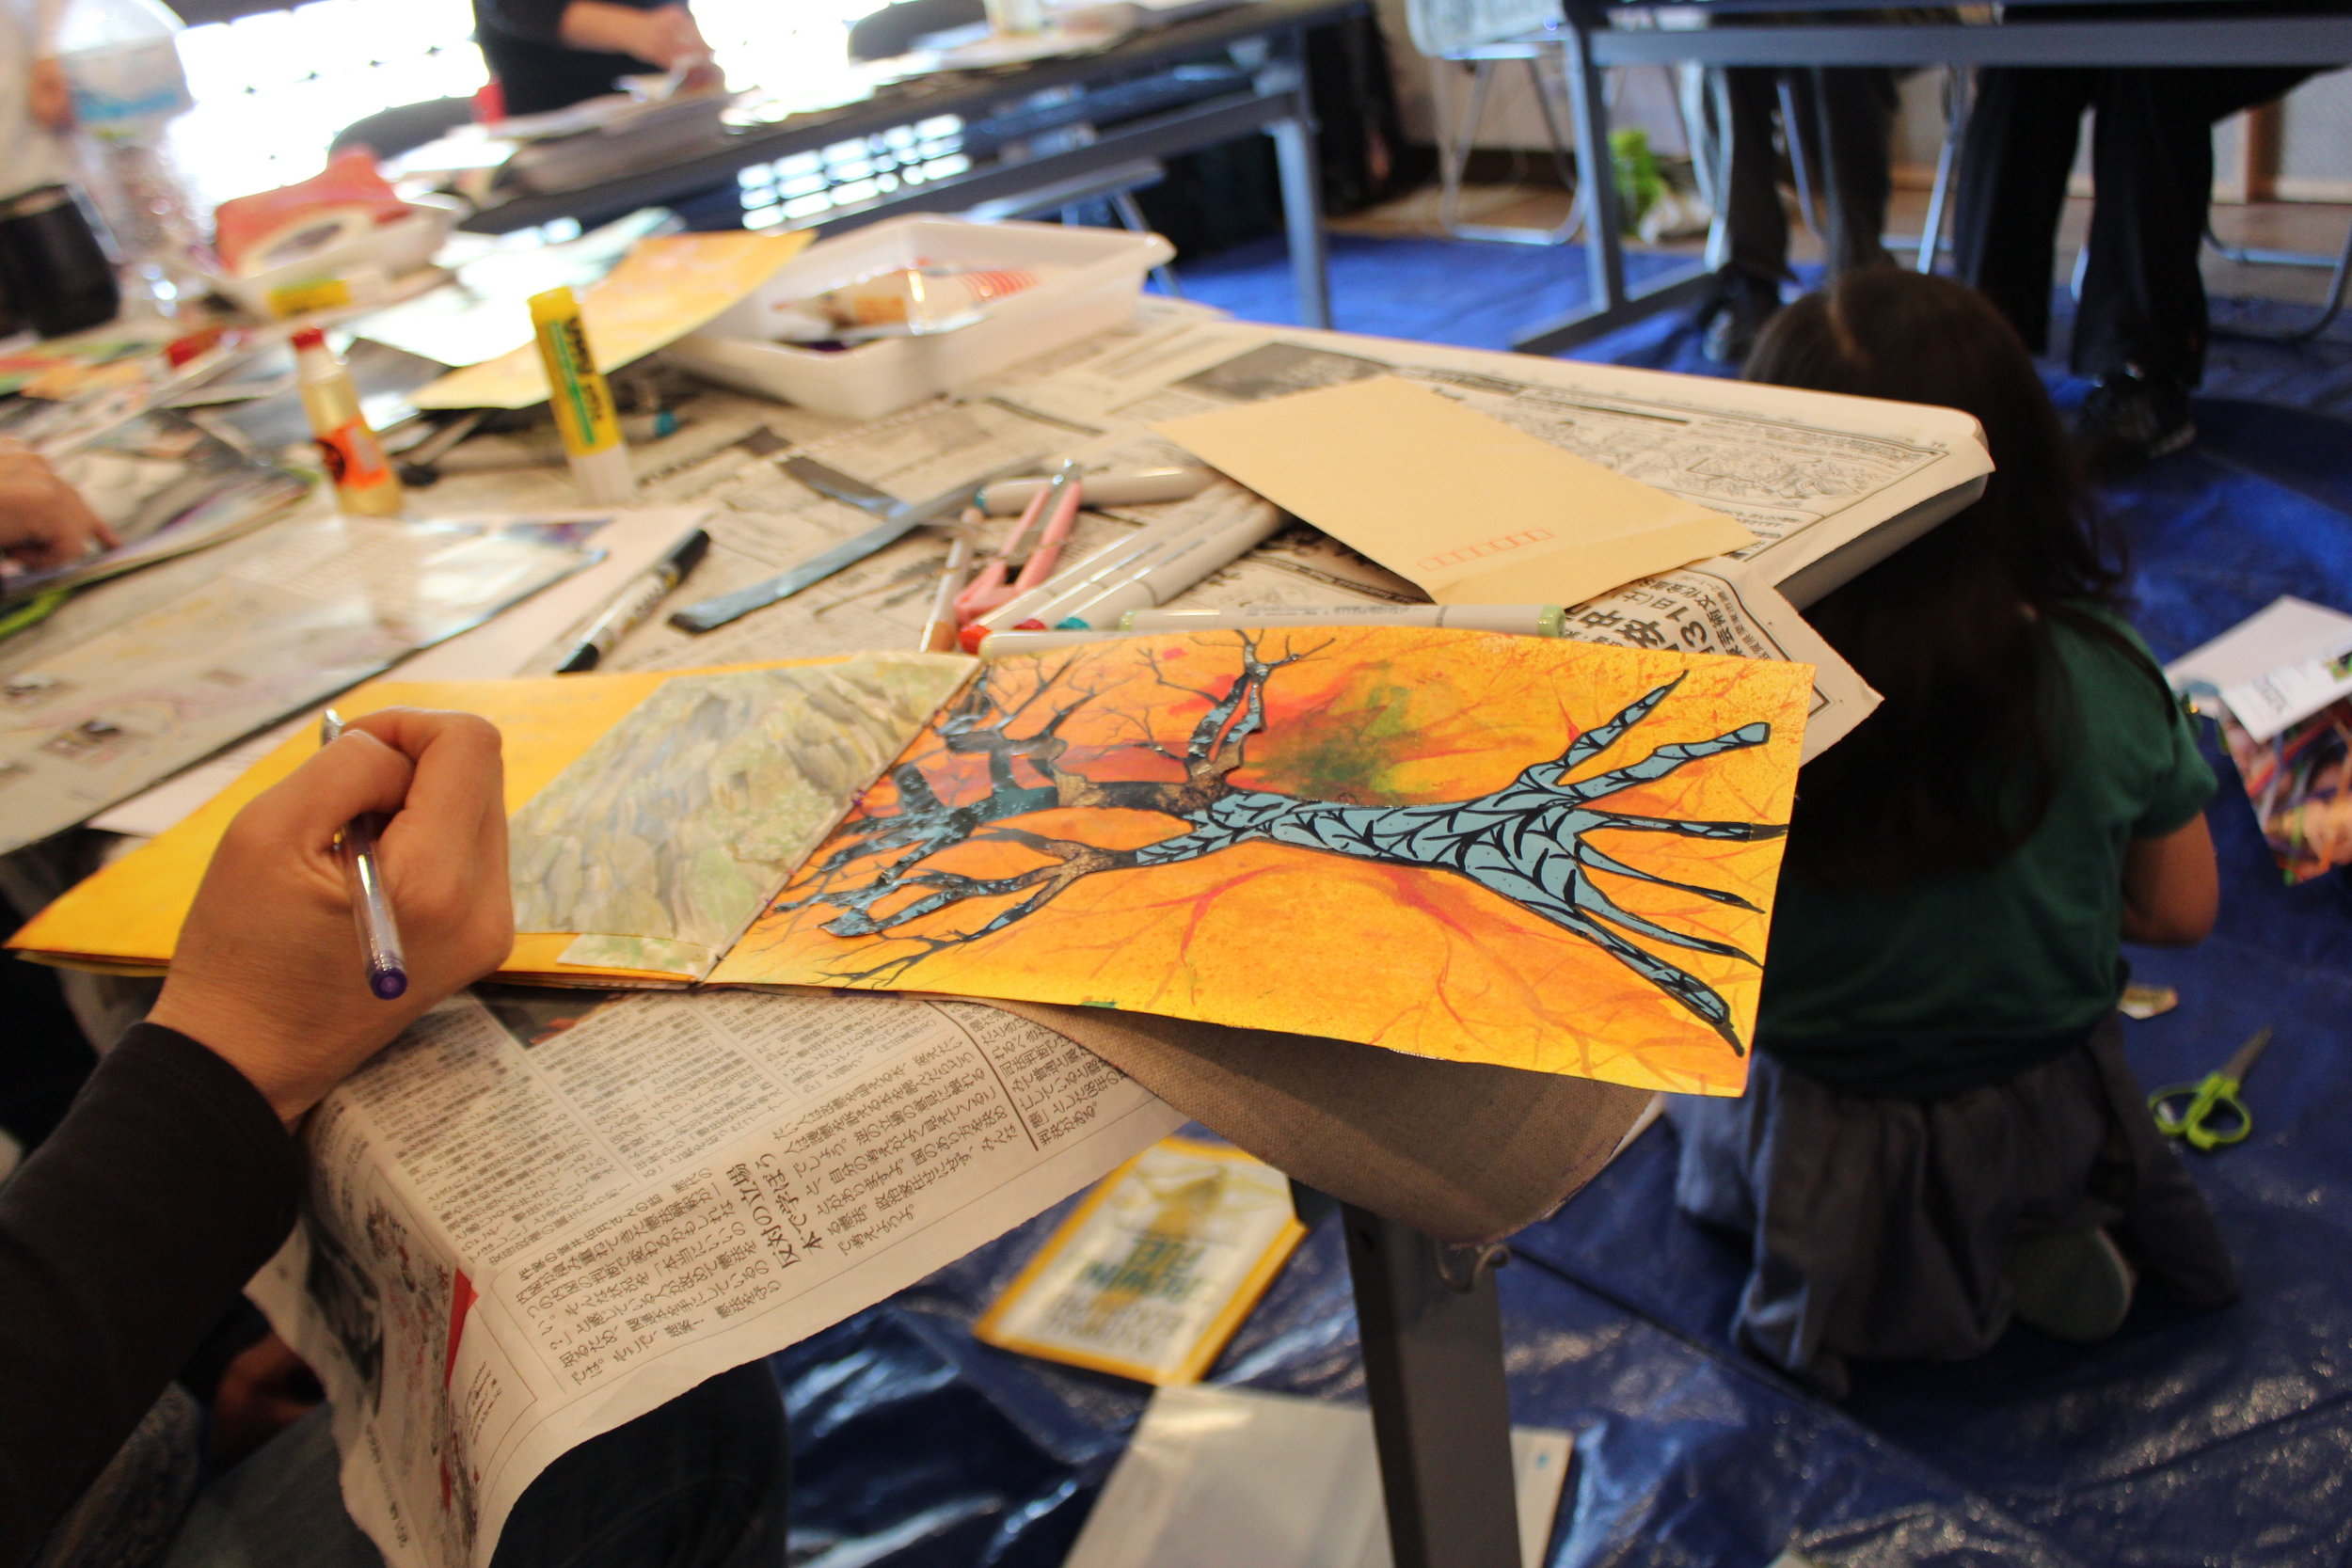 Art Journaling Workshops - This is an open group that meets to learn journaling techniques and grow through personal art making.